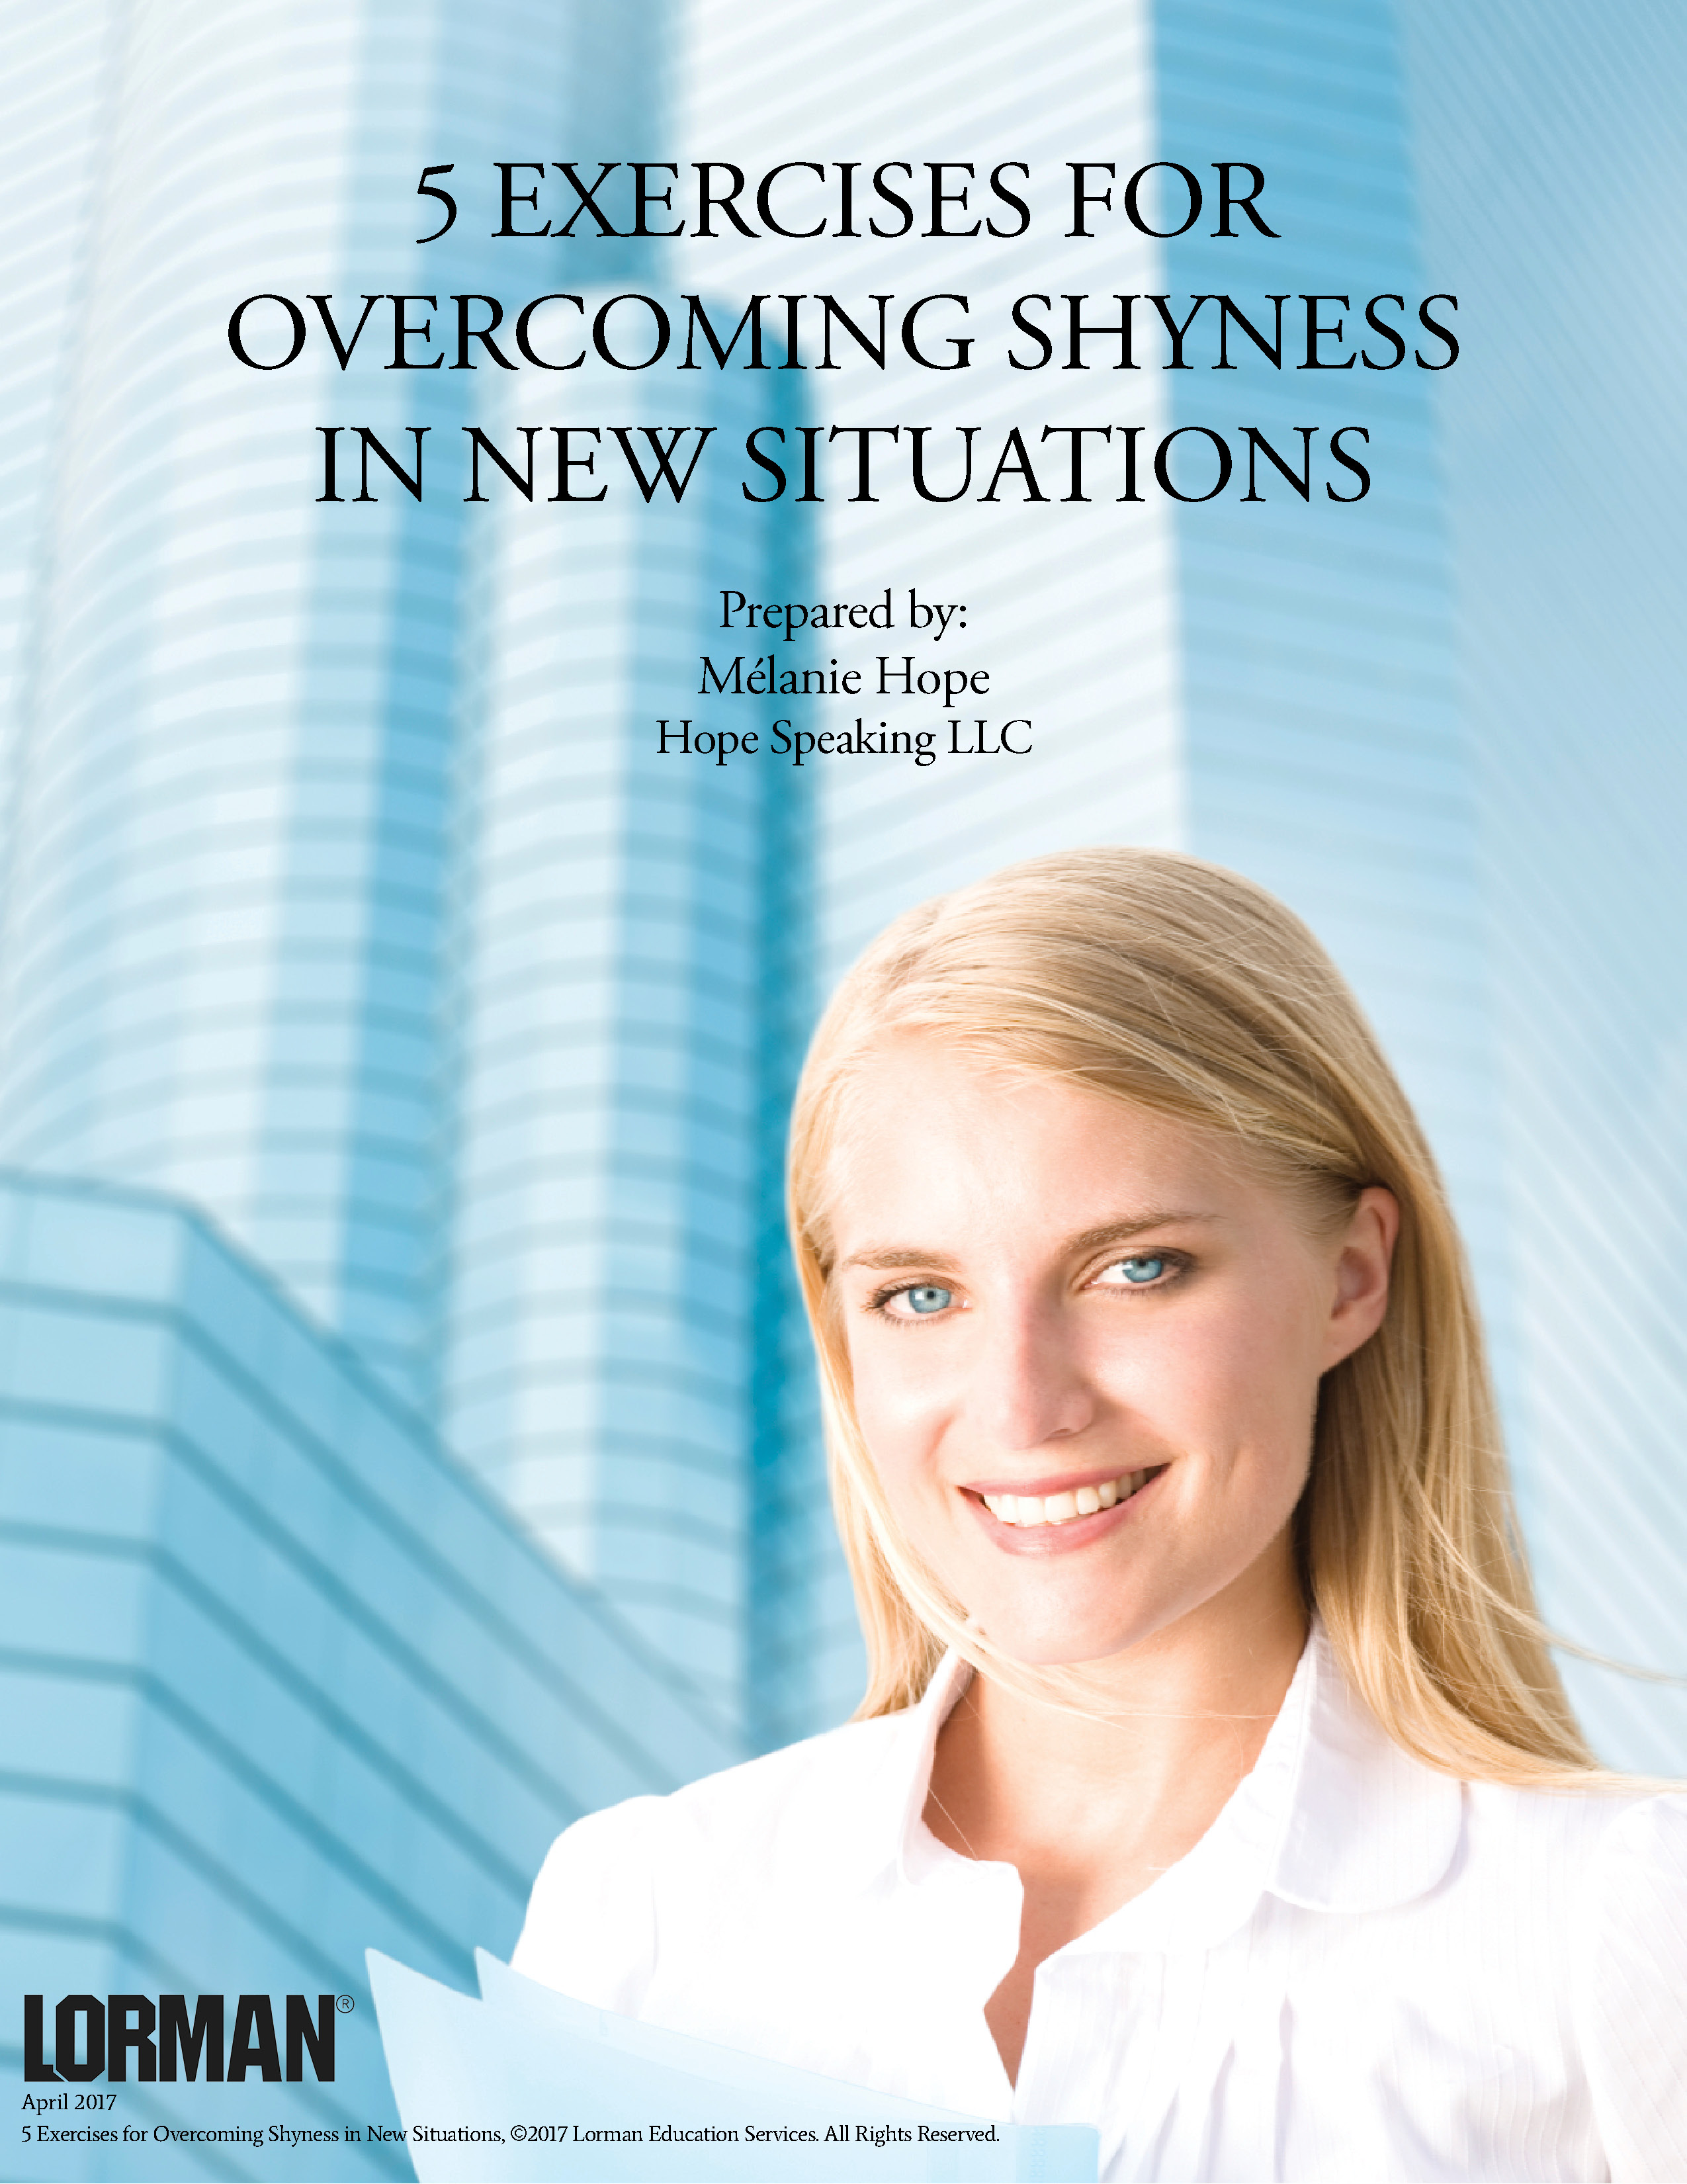 5 Exercises for Overcoming Shyness in New Situations